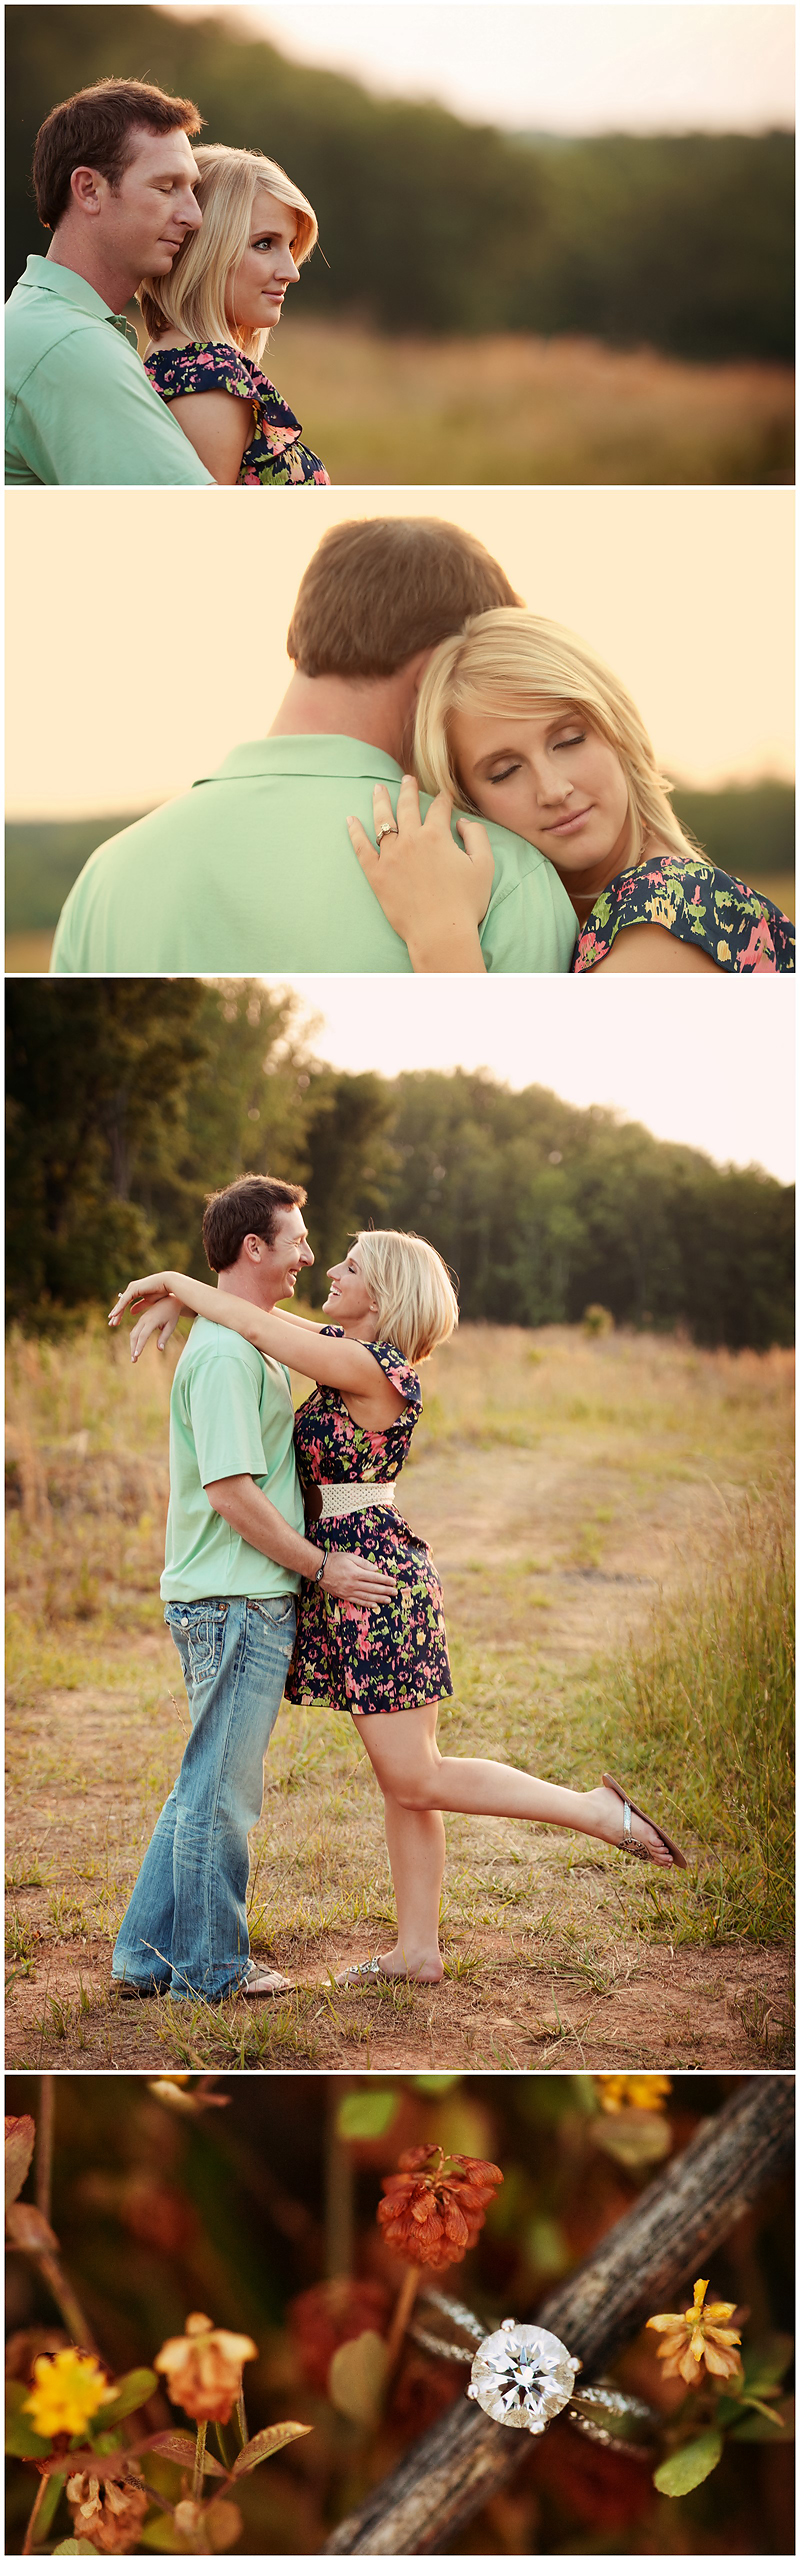 Jess and Jason Engagement Images5 web Alpharetta, GA | BerryTree Photography | Wedding Photographer :  Jessica and Jason!